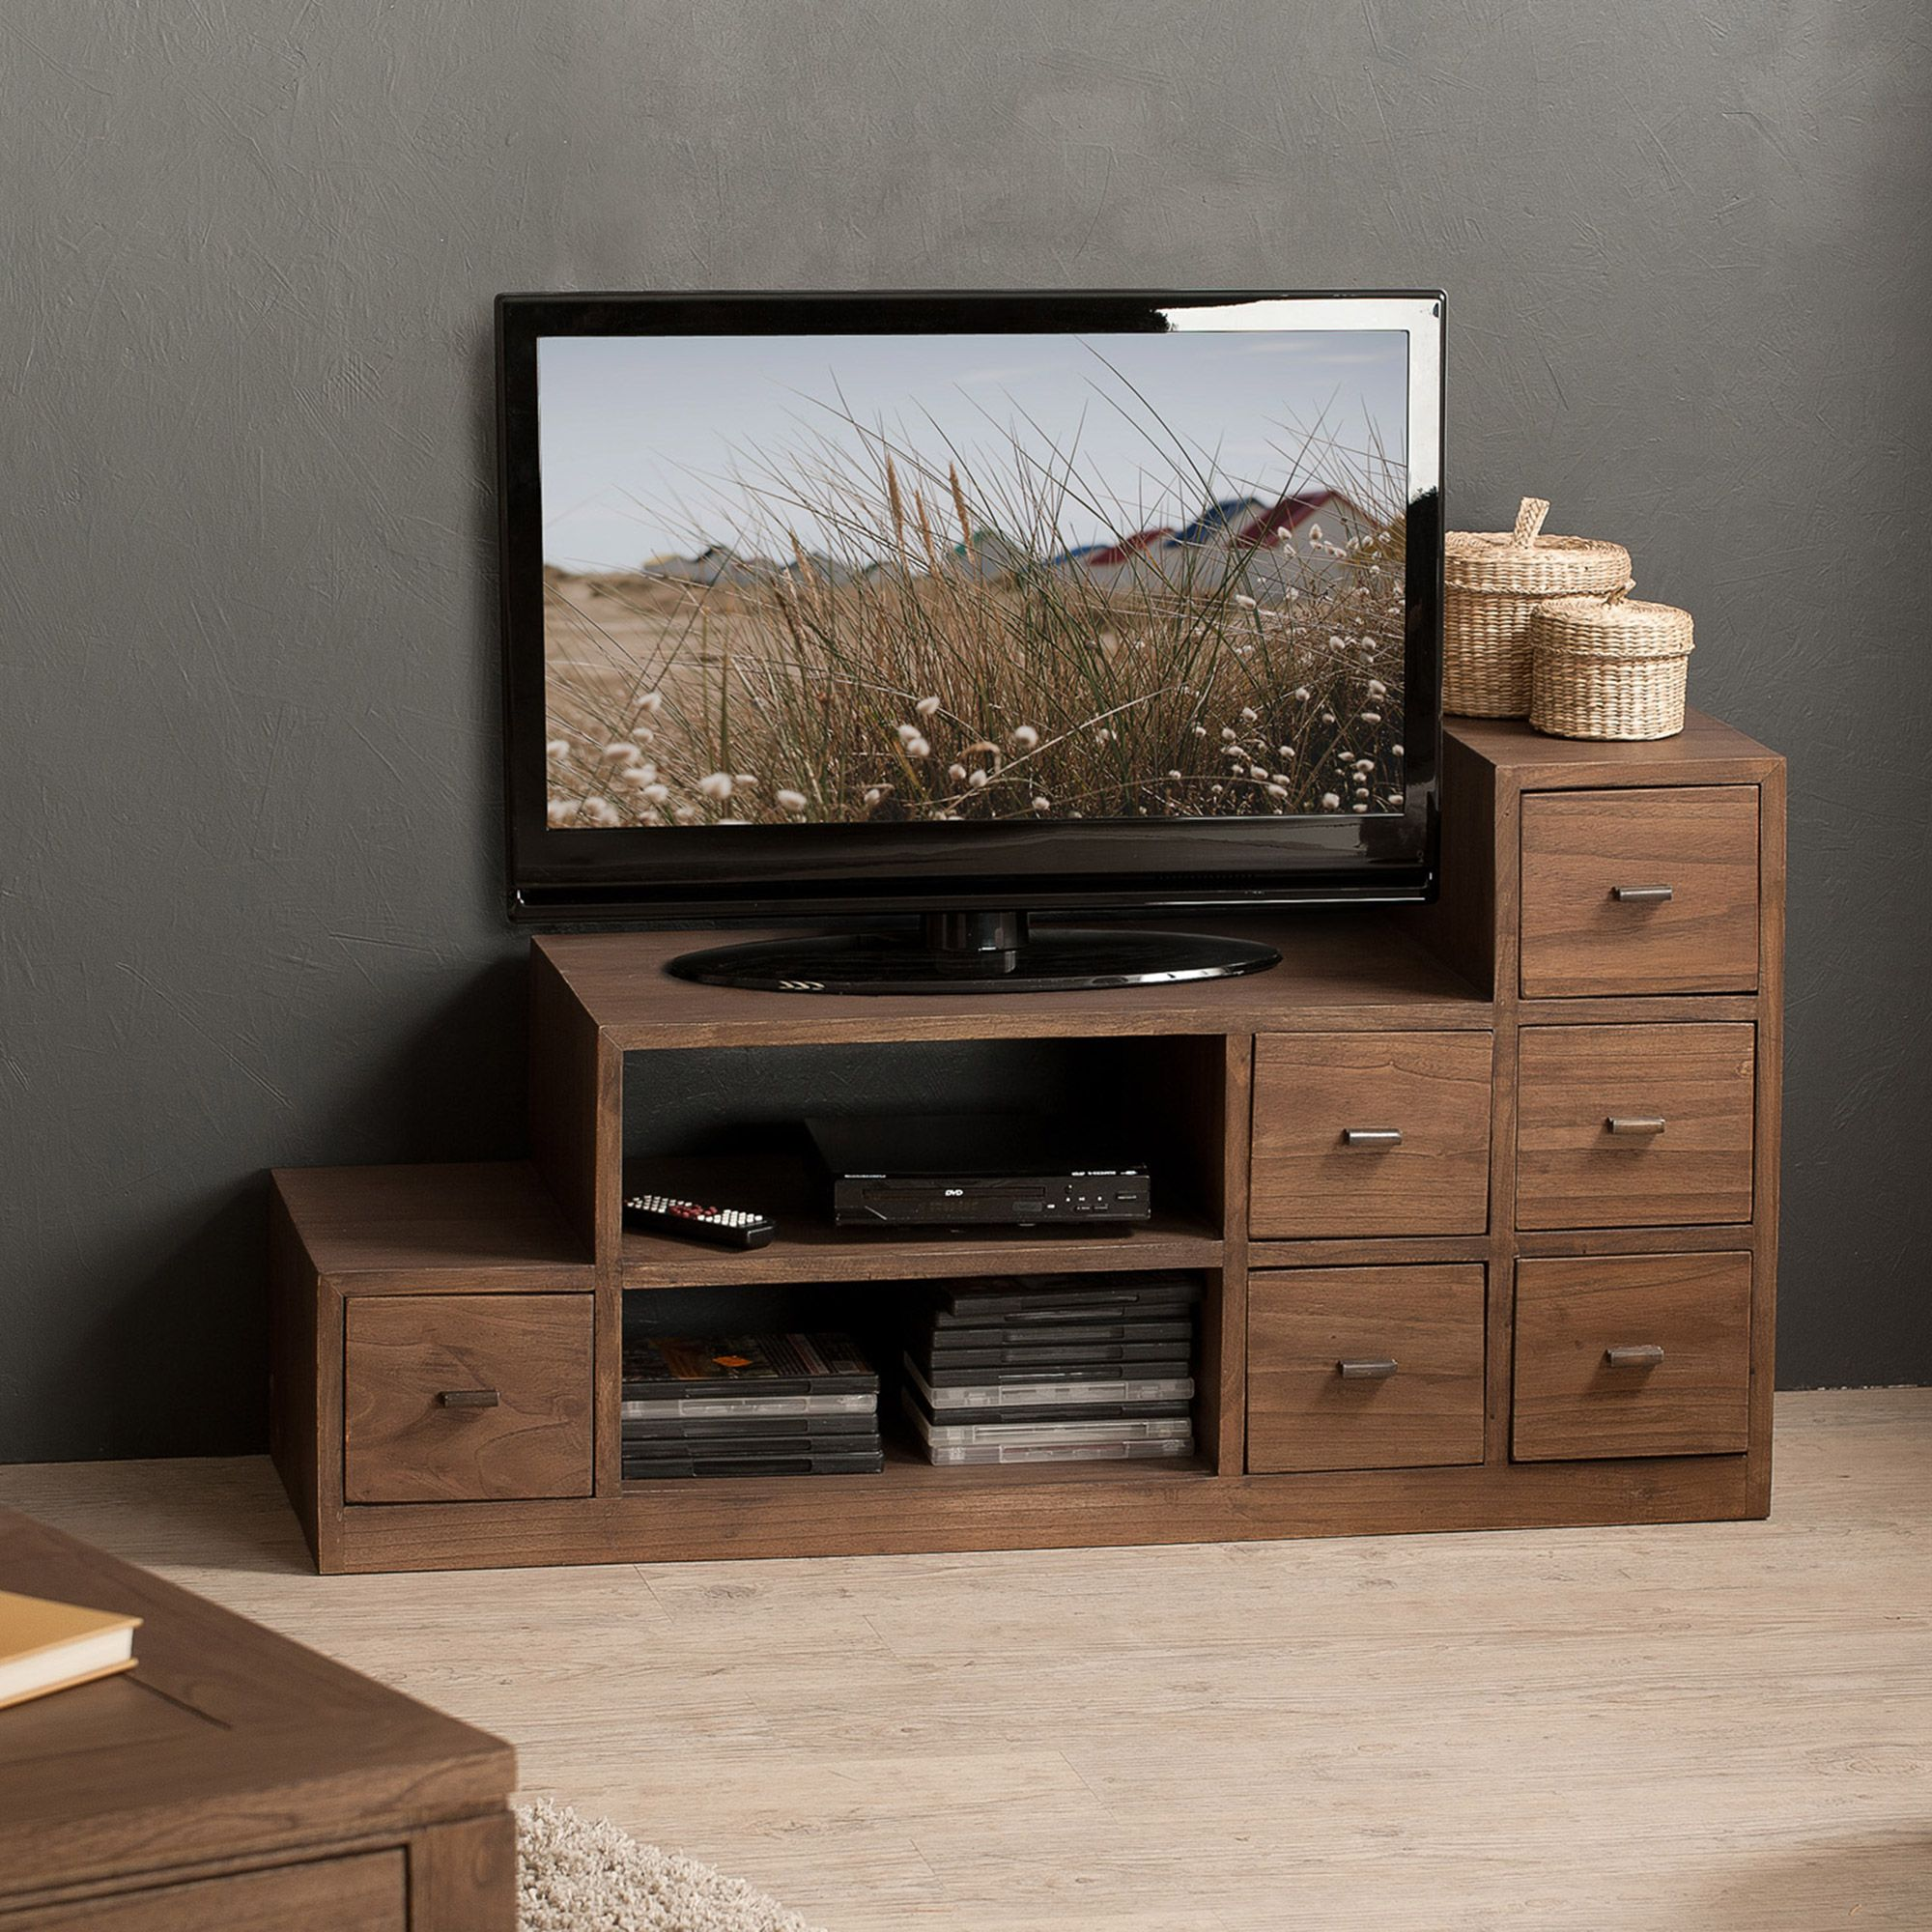 meuble tv bas en bois avec niches et tiroirs l105cm elia meuble tv bas niche et meuble tv. Black Bedroom Furniture Sets. Home Design Ideas